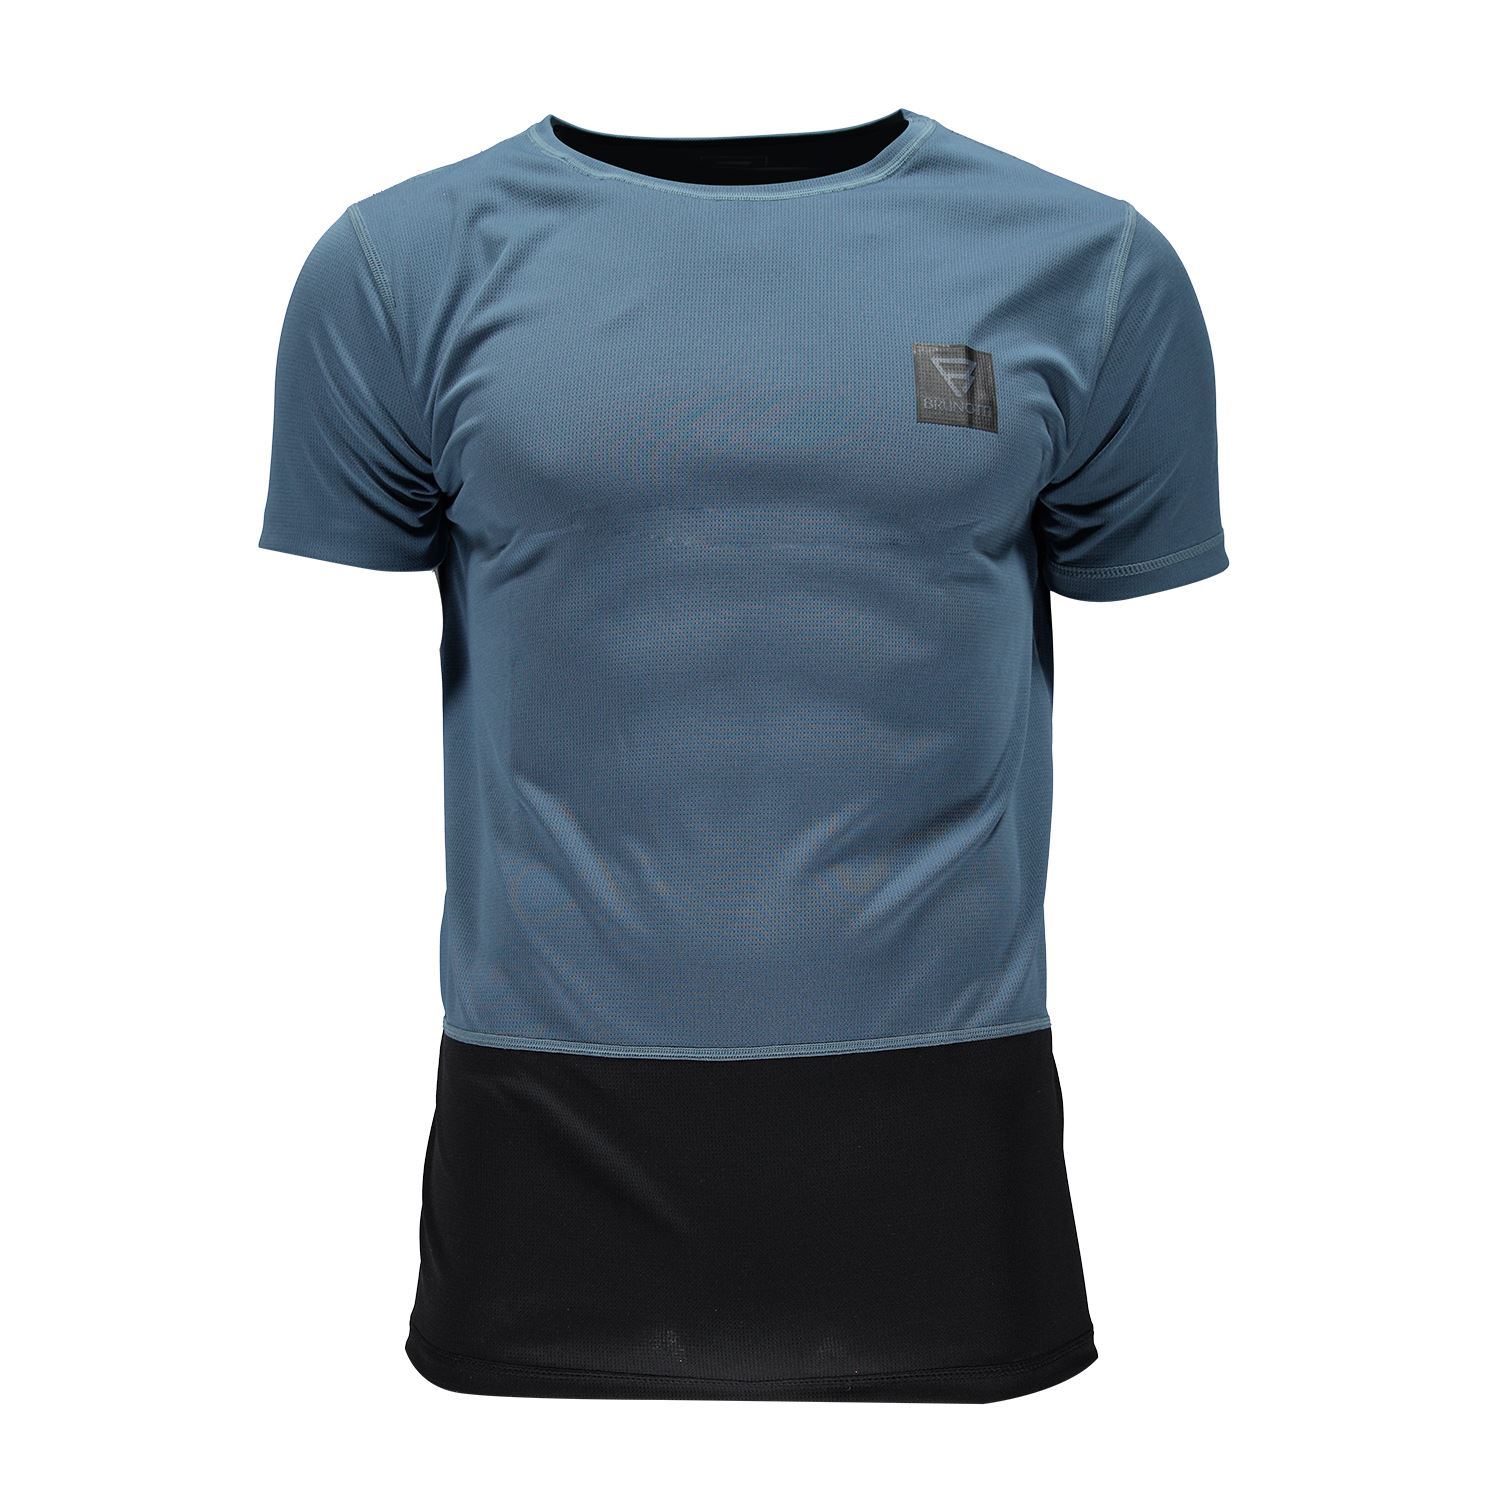 Brunotti Radiance  (blauw) - heren technical tops - Brunotti online shop